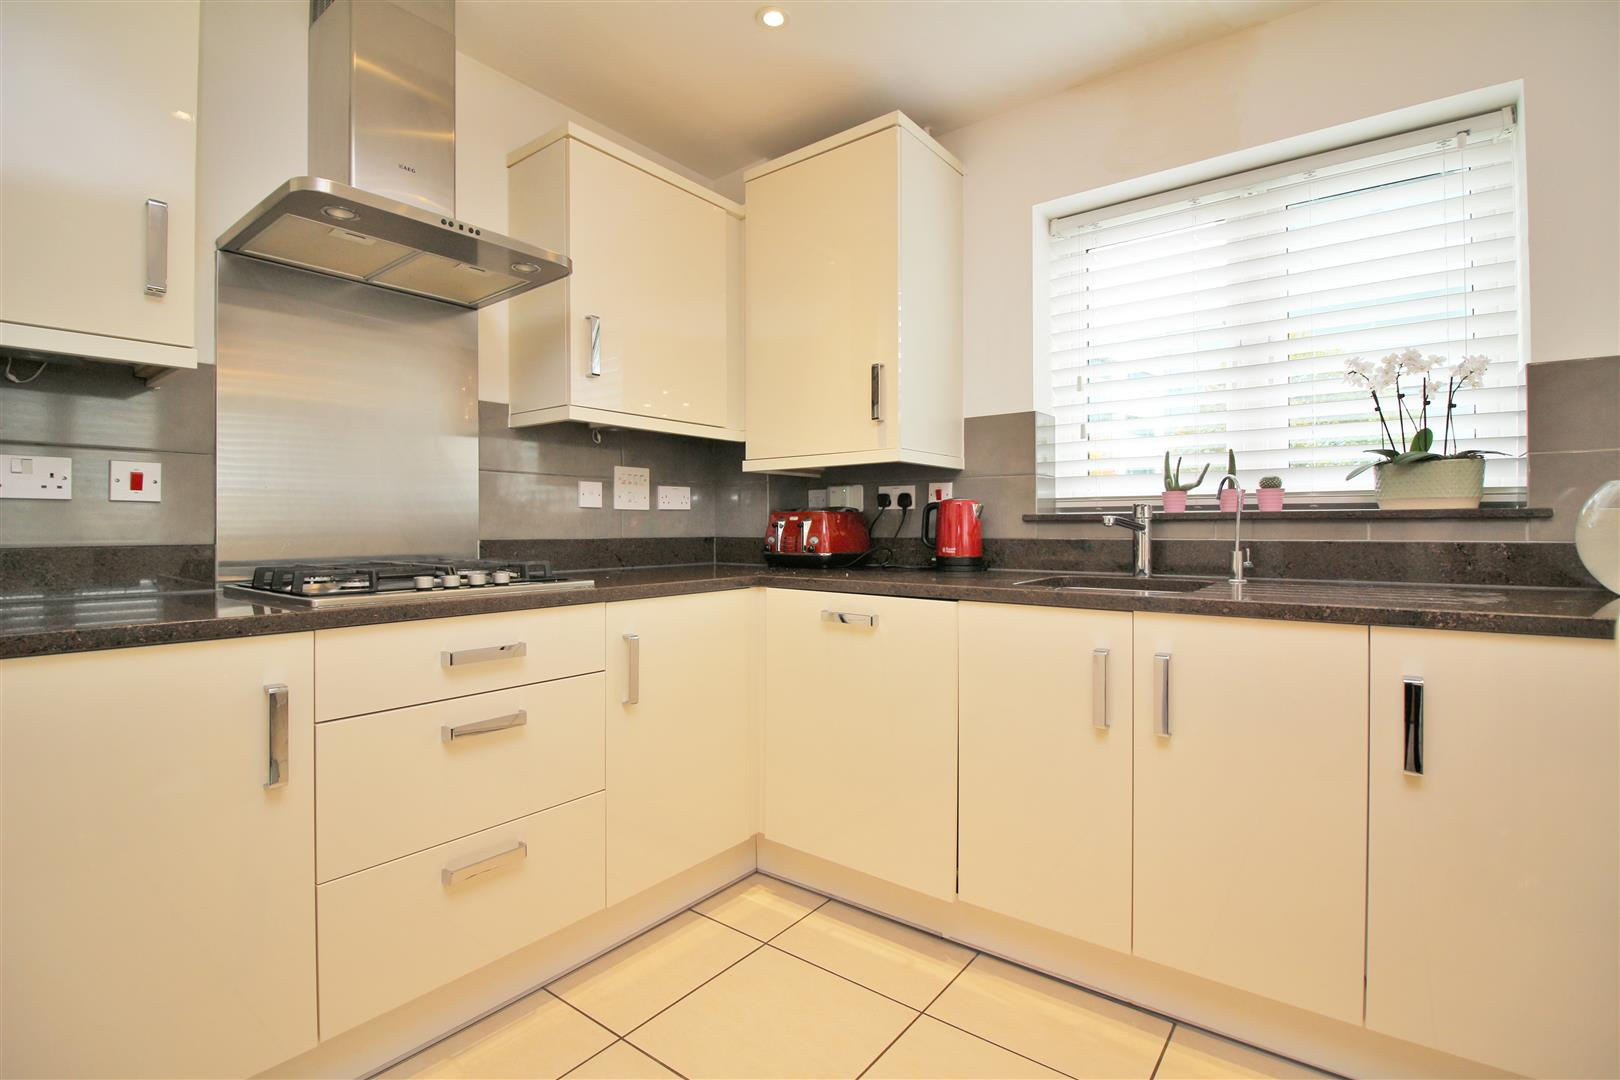 4 bed to rent in Leavesden - (Property Image 7)